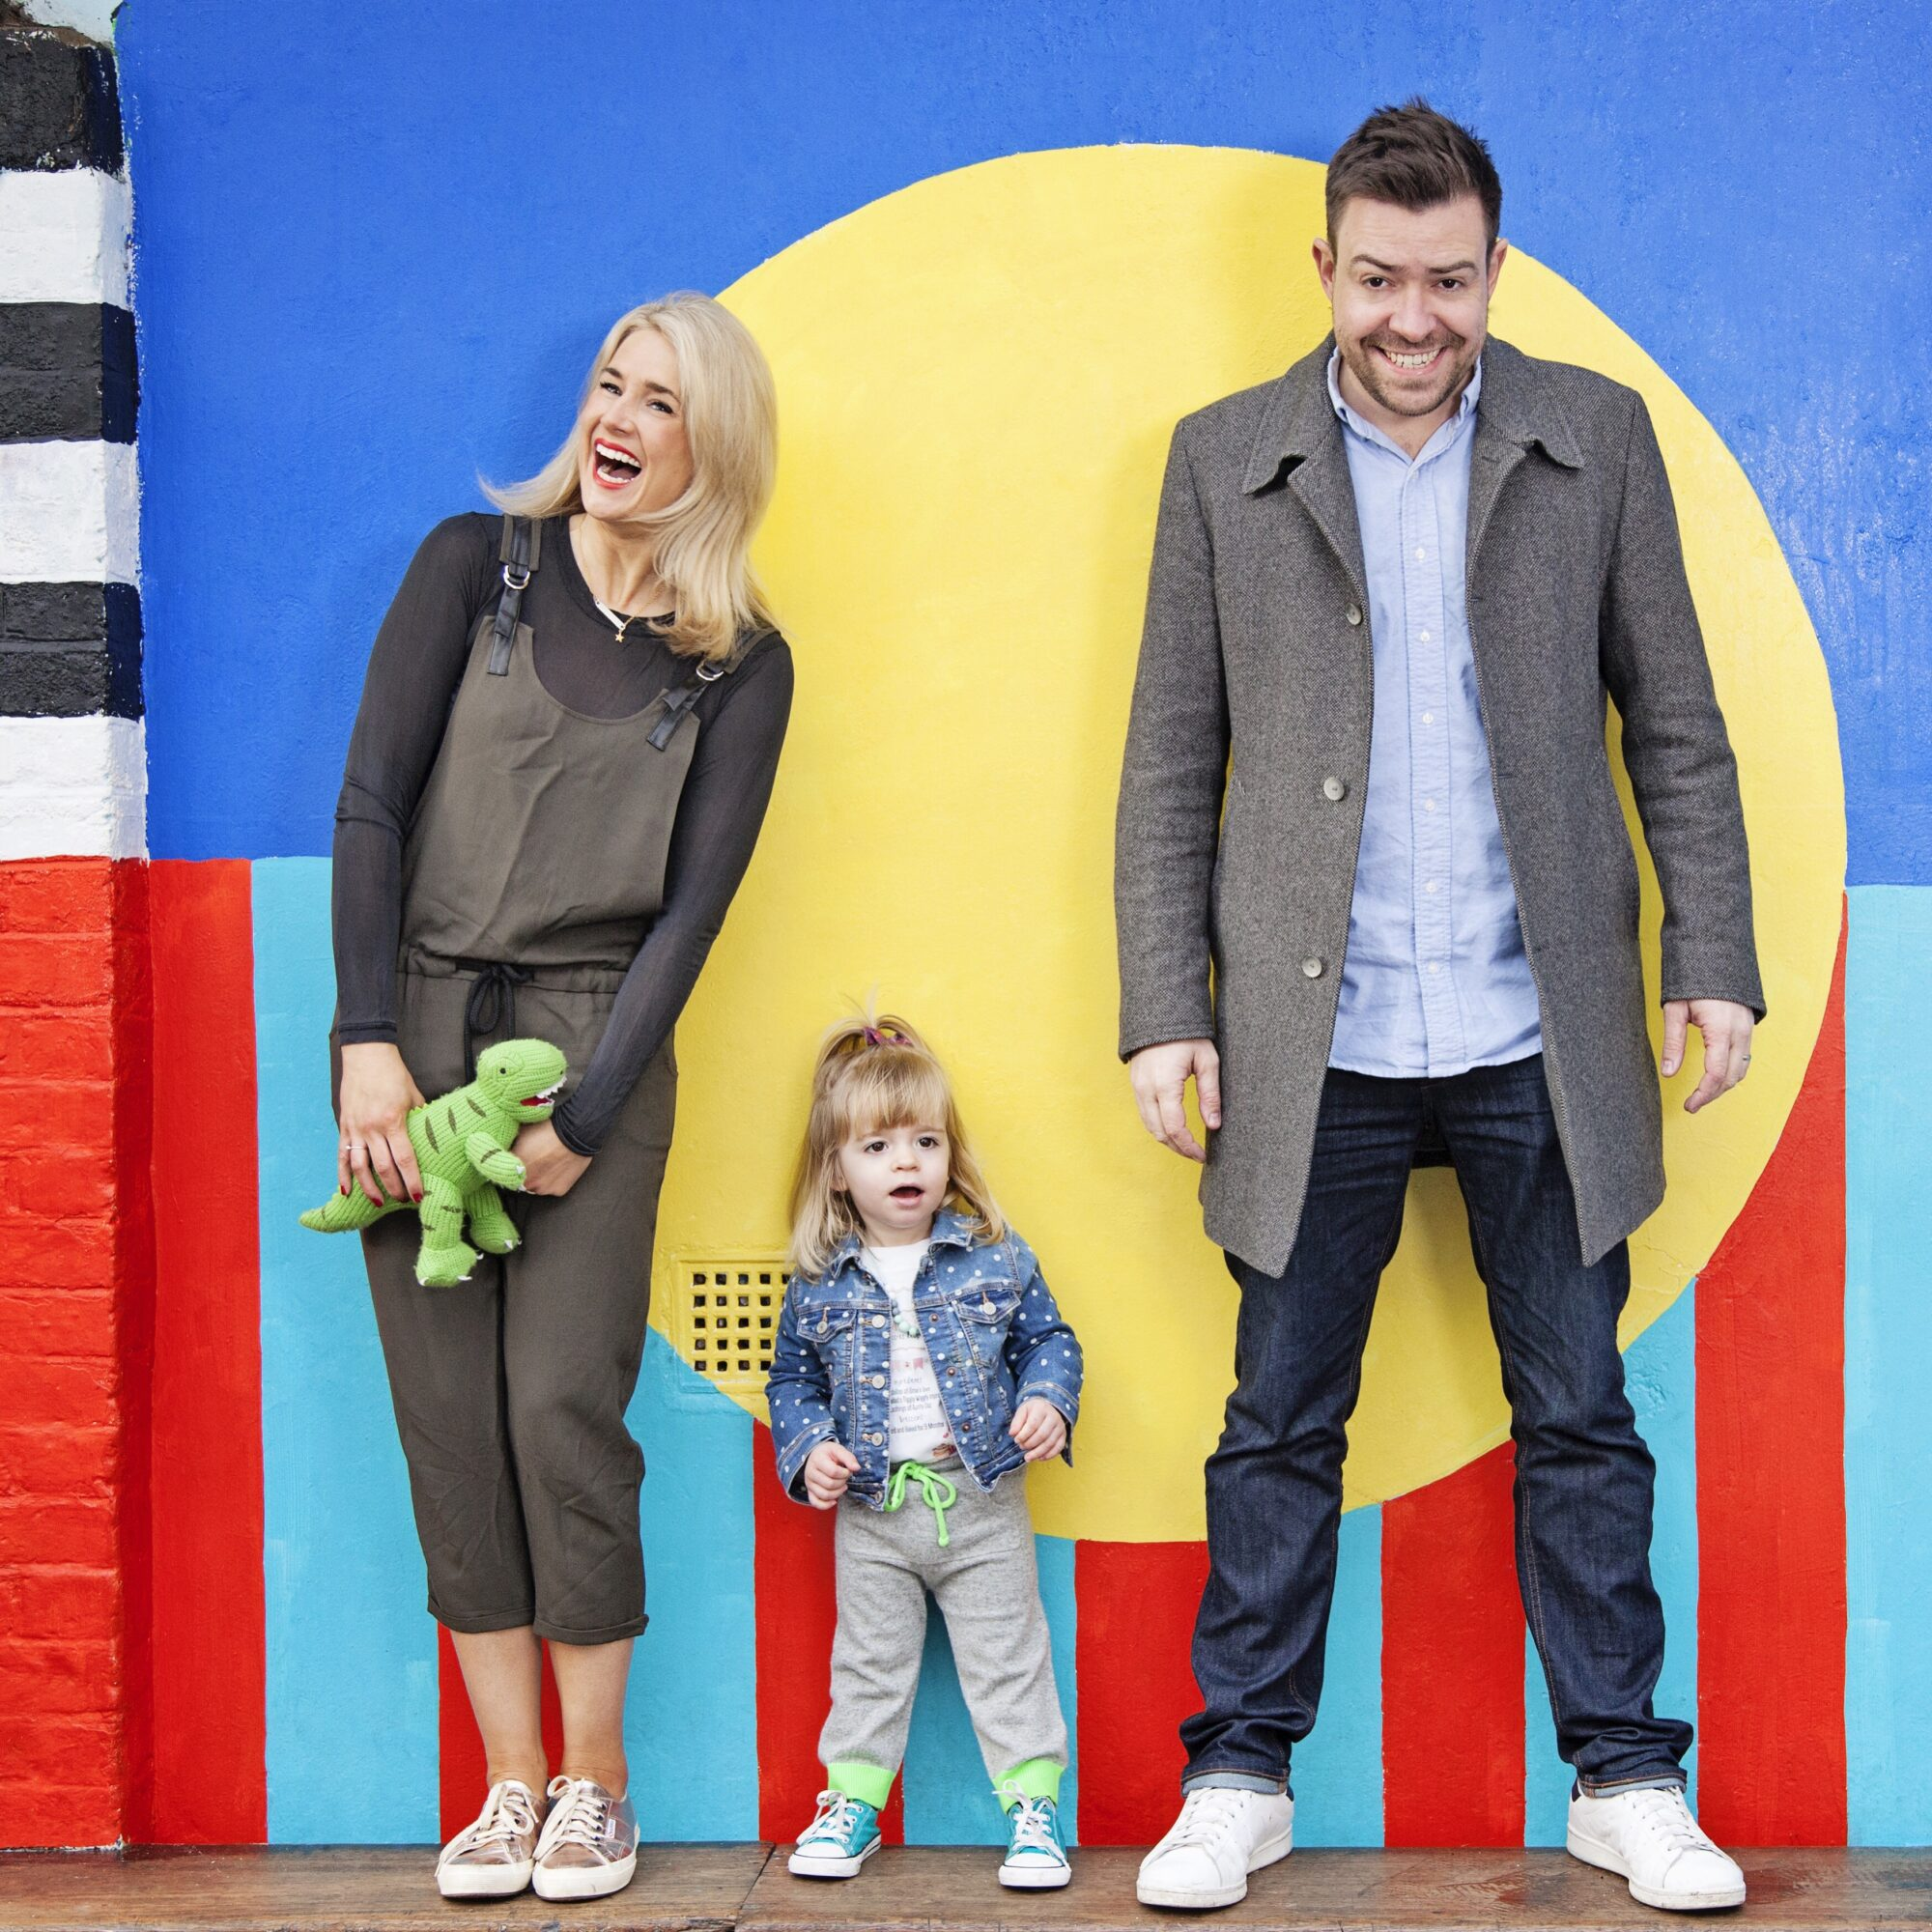 Anna from Mother Pukka, with her daughter Mae and Instagram-husband Matt, in Hackney. Photographed against wall murals painted by Camille Walala.